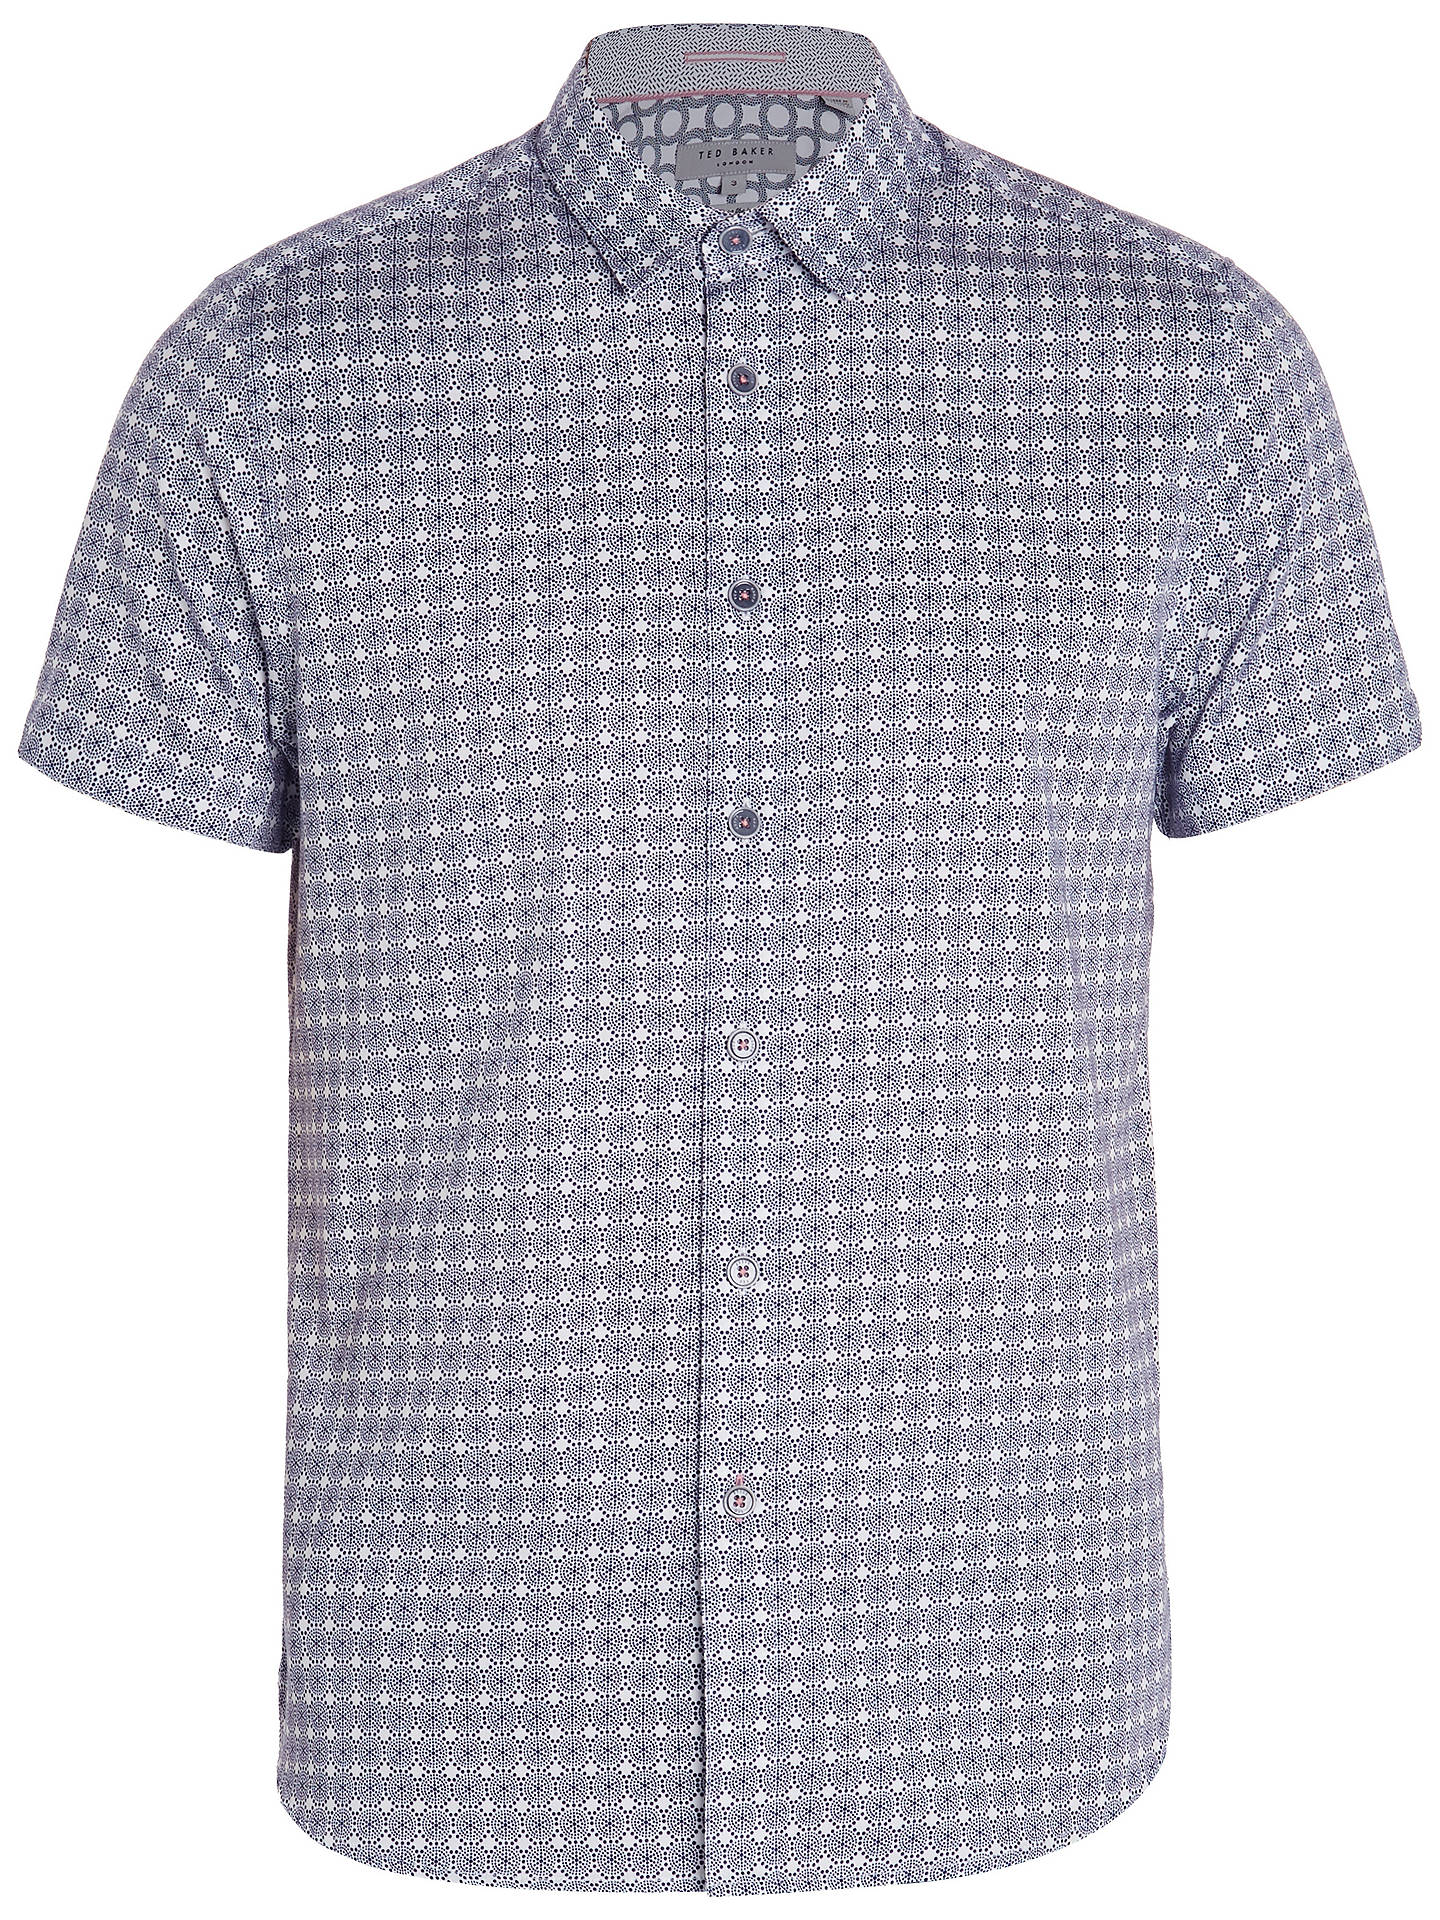 BuyTed Baker Modmo Circle Print Short Sleeve Shirt, Blue, 3 Online at johnlewis.com